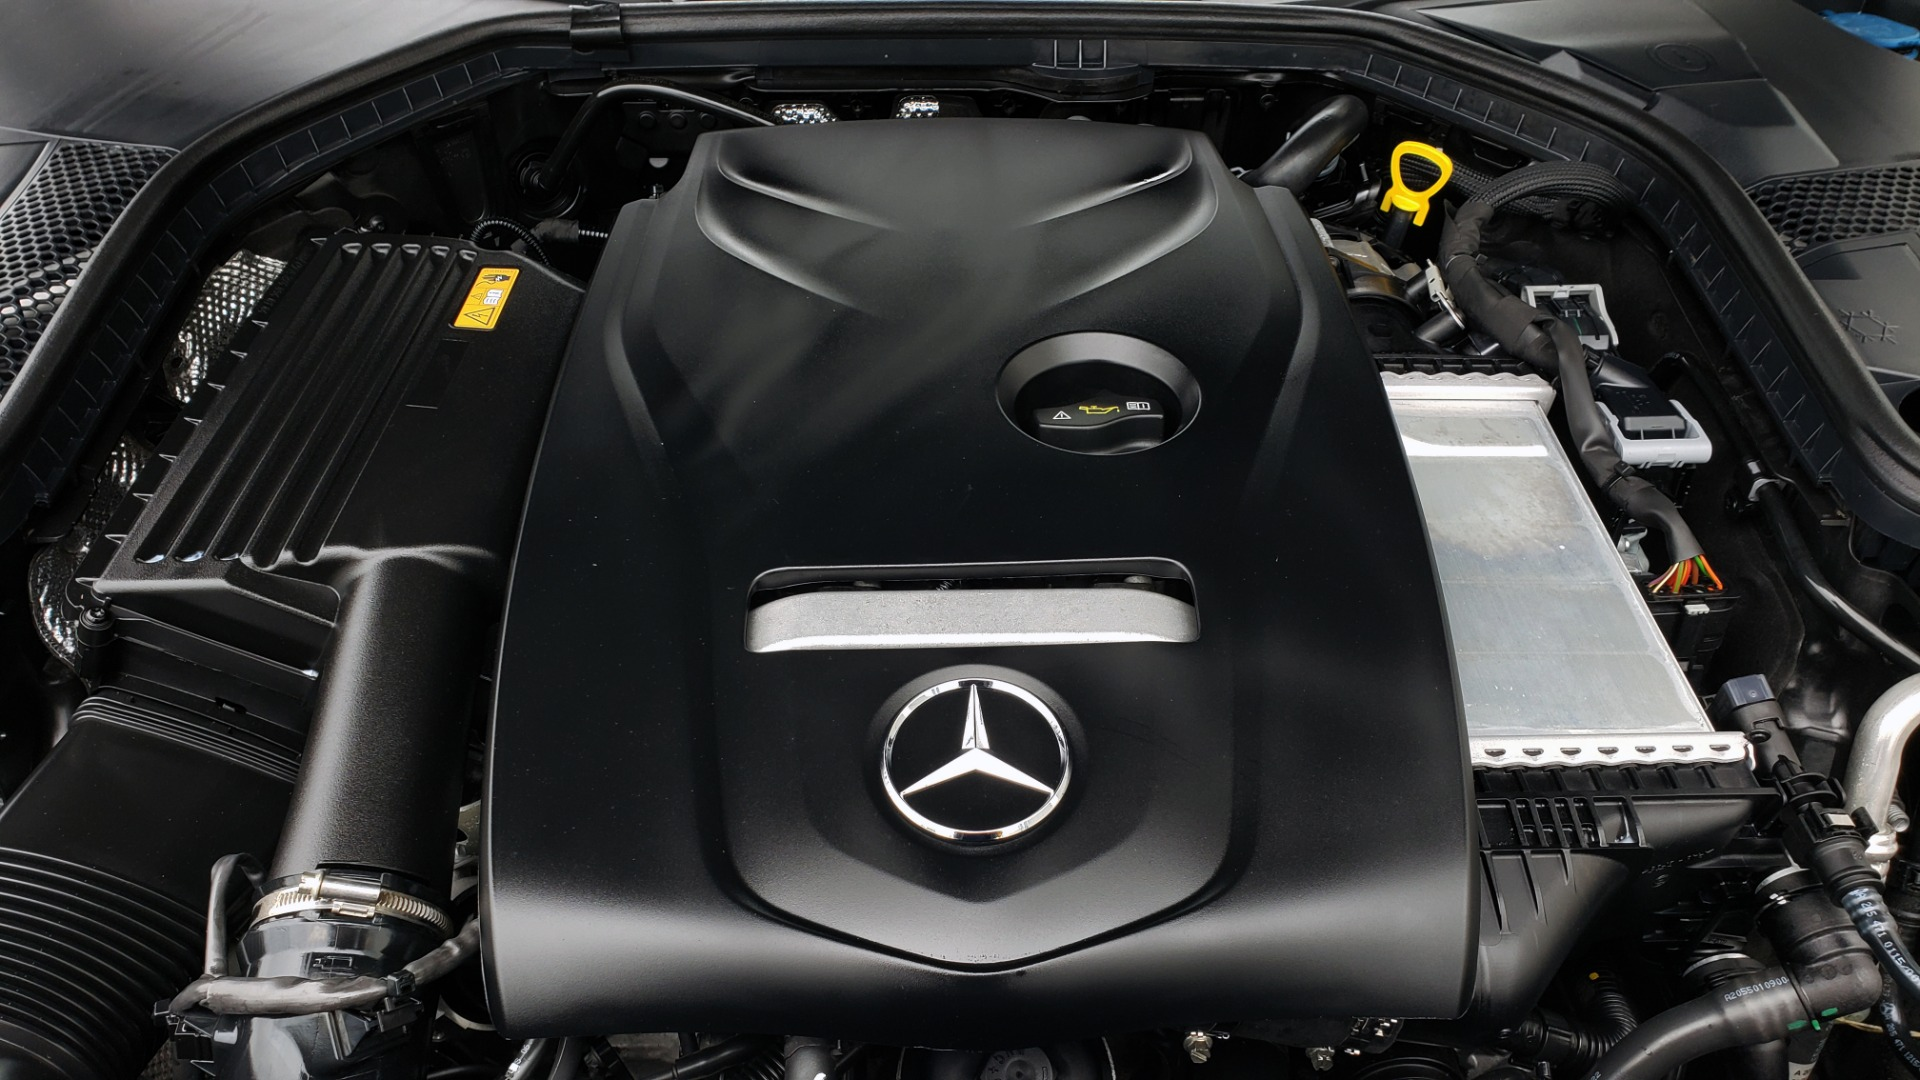 Used 2018 Mercedes-Benz C-CLASS C 300 PREMIUM / 2.0L TURBO / PANO-ROOF / KEYLESS-GO / REARVIEW for sale Sold at Formula Imports in Charlotte NC 28227 11